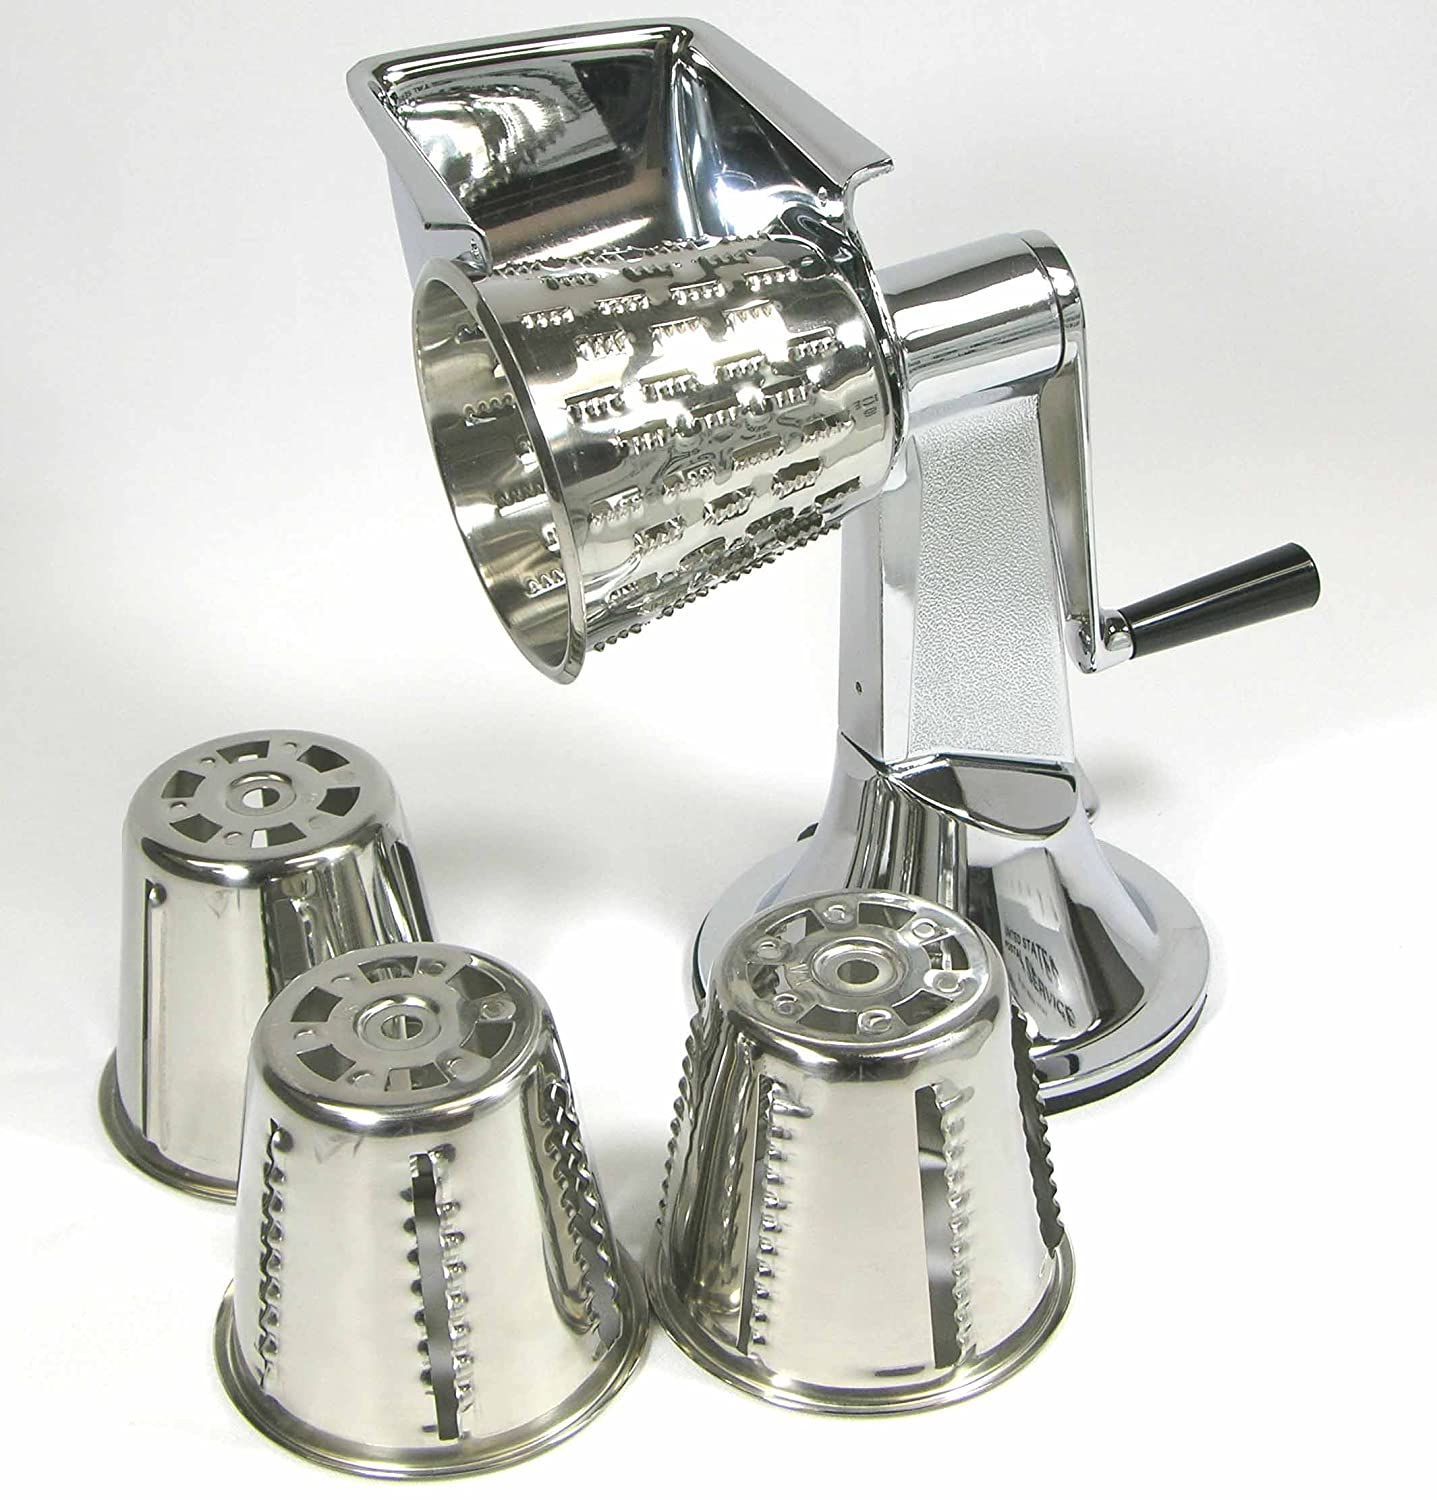 Lustre craft kitchen kutter - Amazon Com West Bend Stainless Steel Kitchen Kutter And Cones Cutter Includes 4 Cones Manual 1179 Kitchen Dining